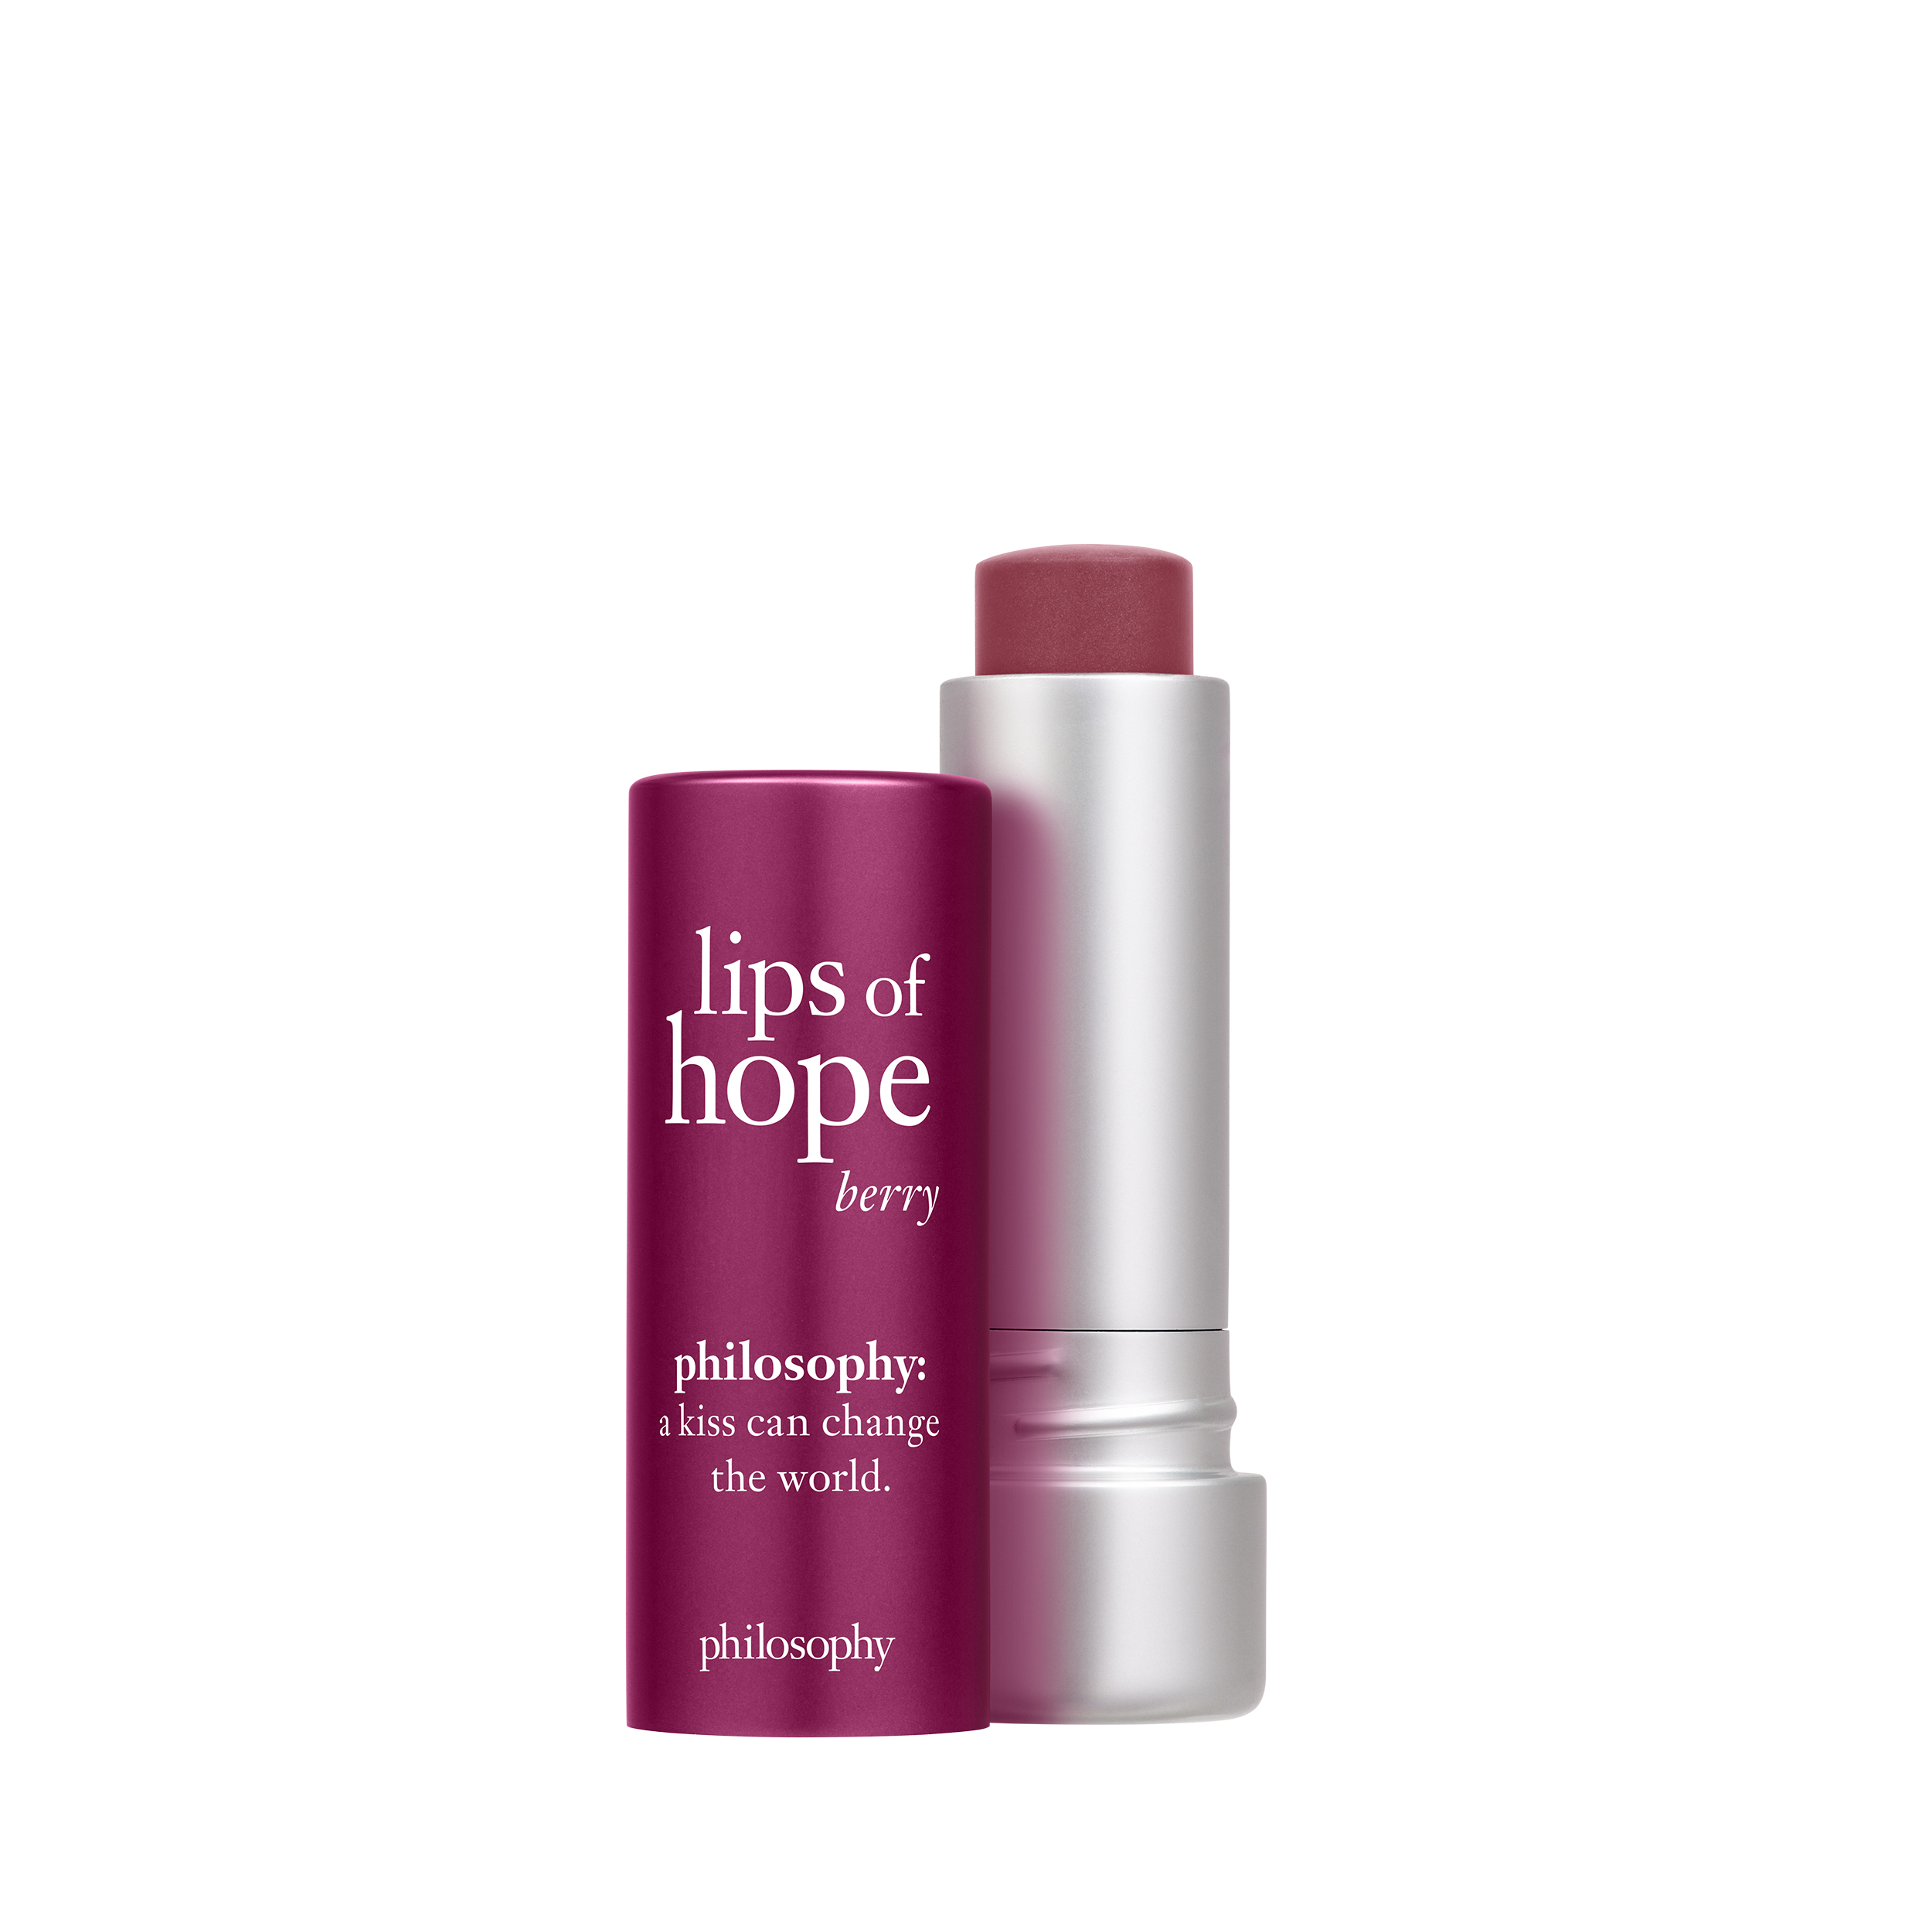 philosophy, lips of hope berry